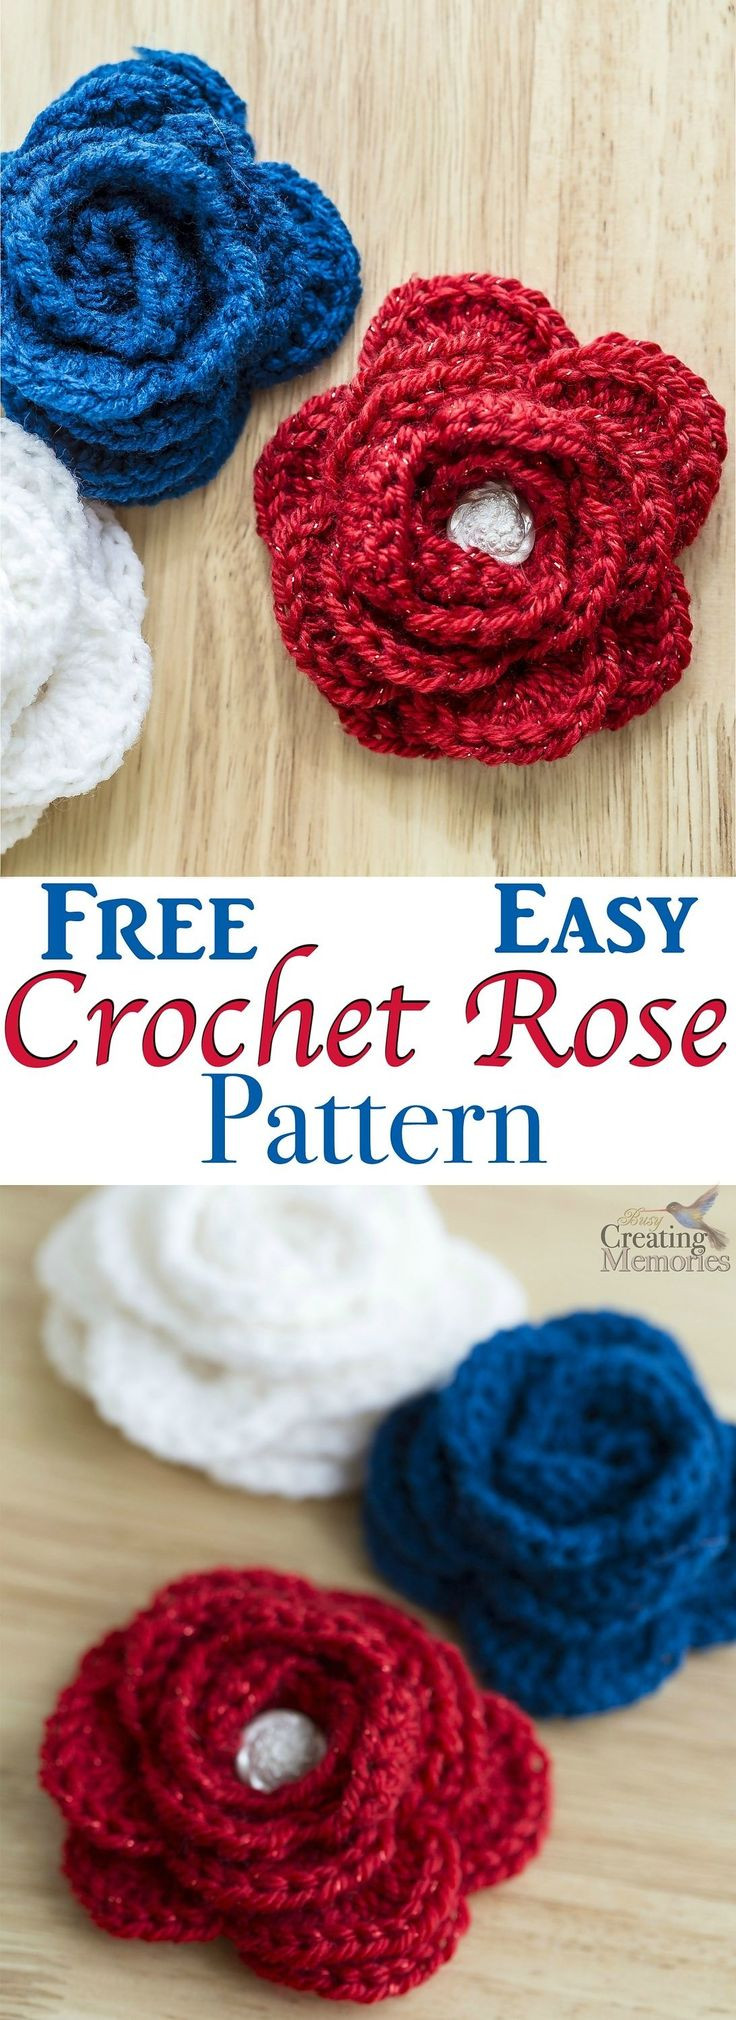 Luxury 25 Best Ideas About Easy Crochet Headbands On Pinterest Easy Beginner Crochet Patterns Of Marvelous 41 Pictures Easy Beginner Crochet Patterns